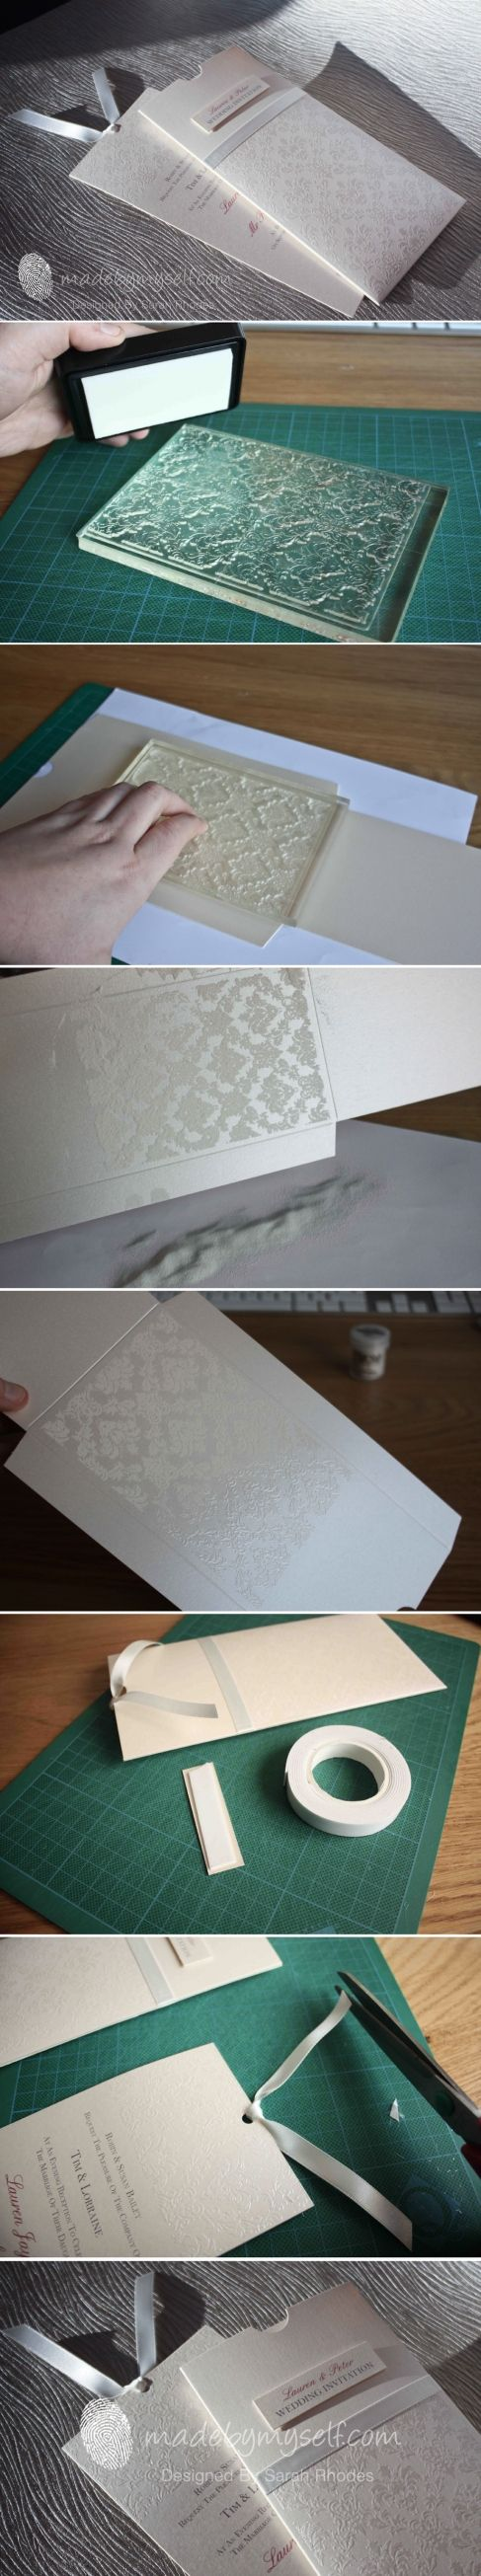 Wedding Invitation using Embossing Powder stamp and Embossing Powder. Full tutorial can be found here: www.madebymyself.com/weddings/wow